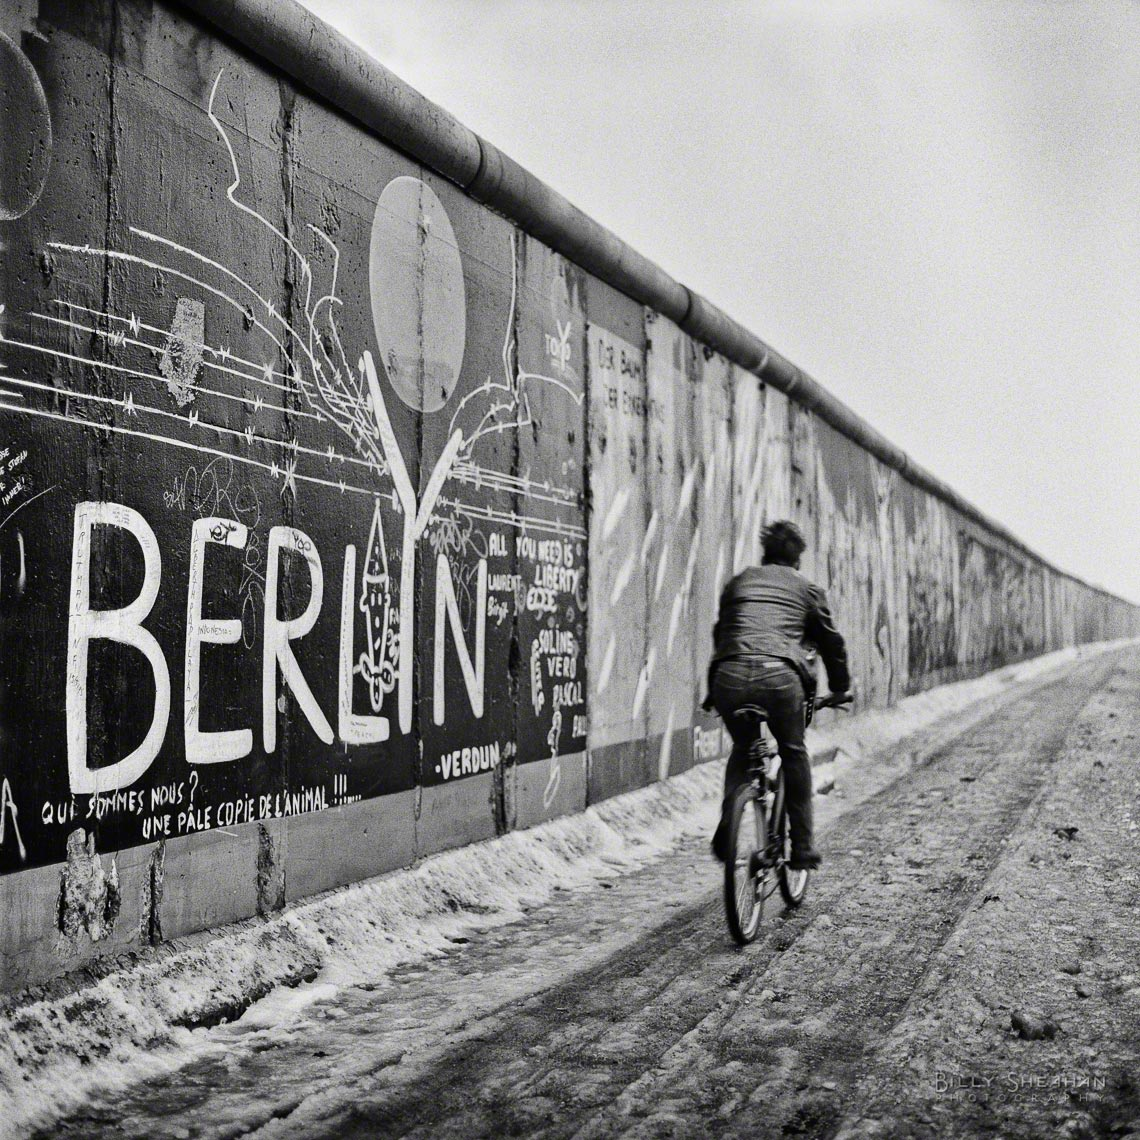 Bicyclist_Berlin_Wall_Germany-363_05_2_D.jpg